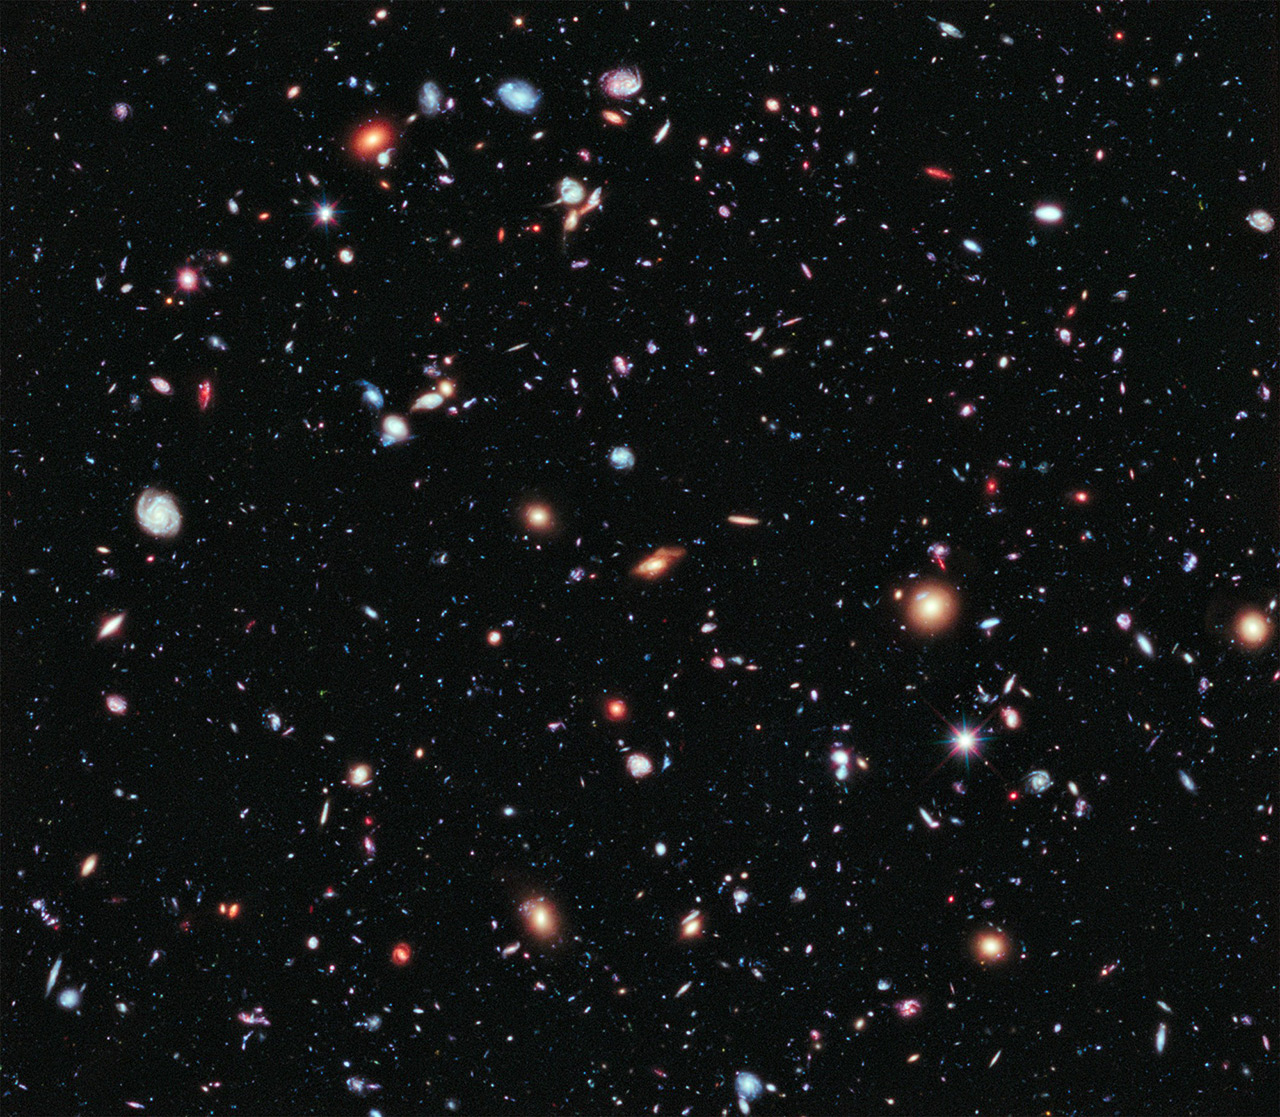 NASA Hubble Space Telescope Universe Galaxy